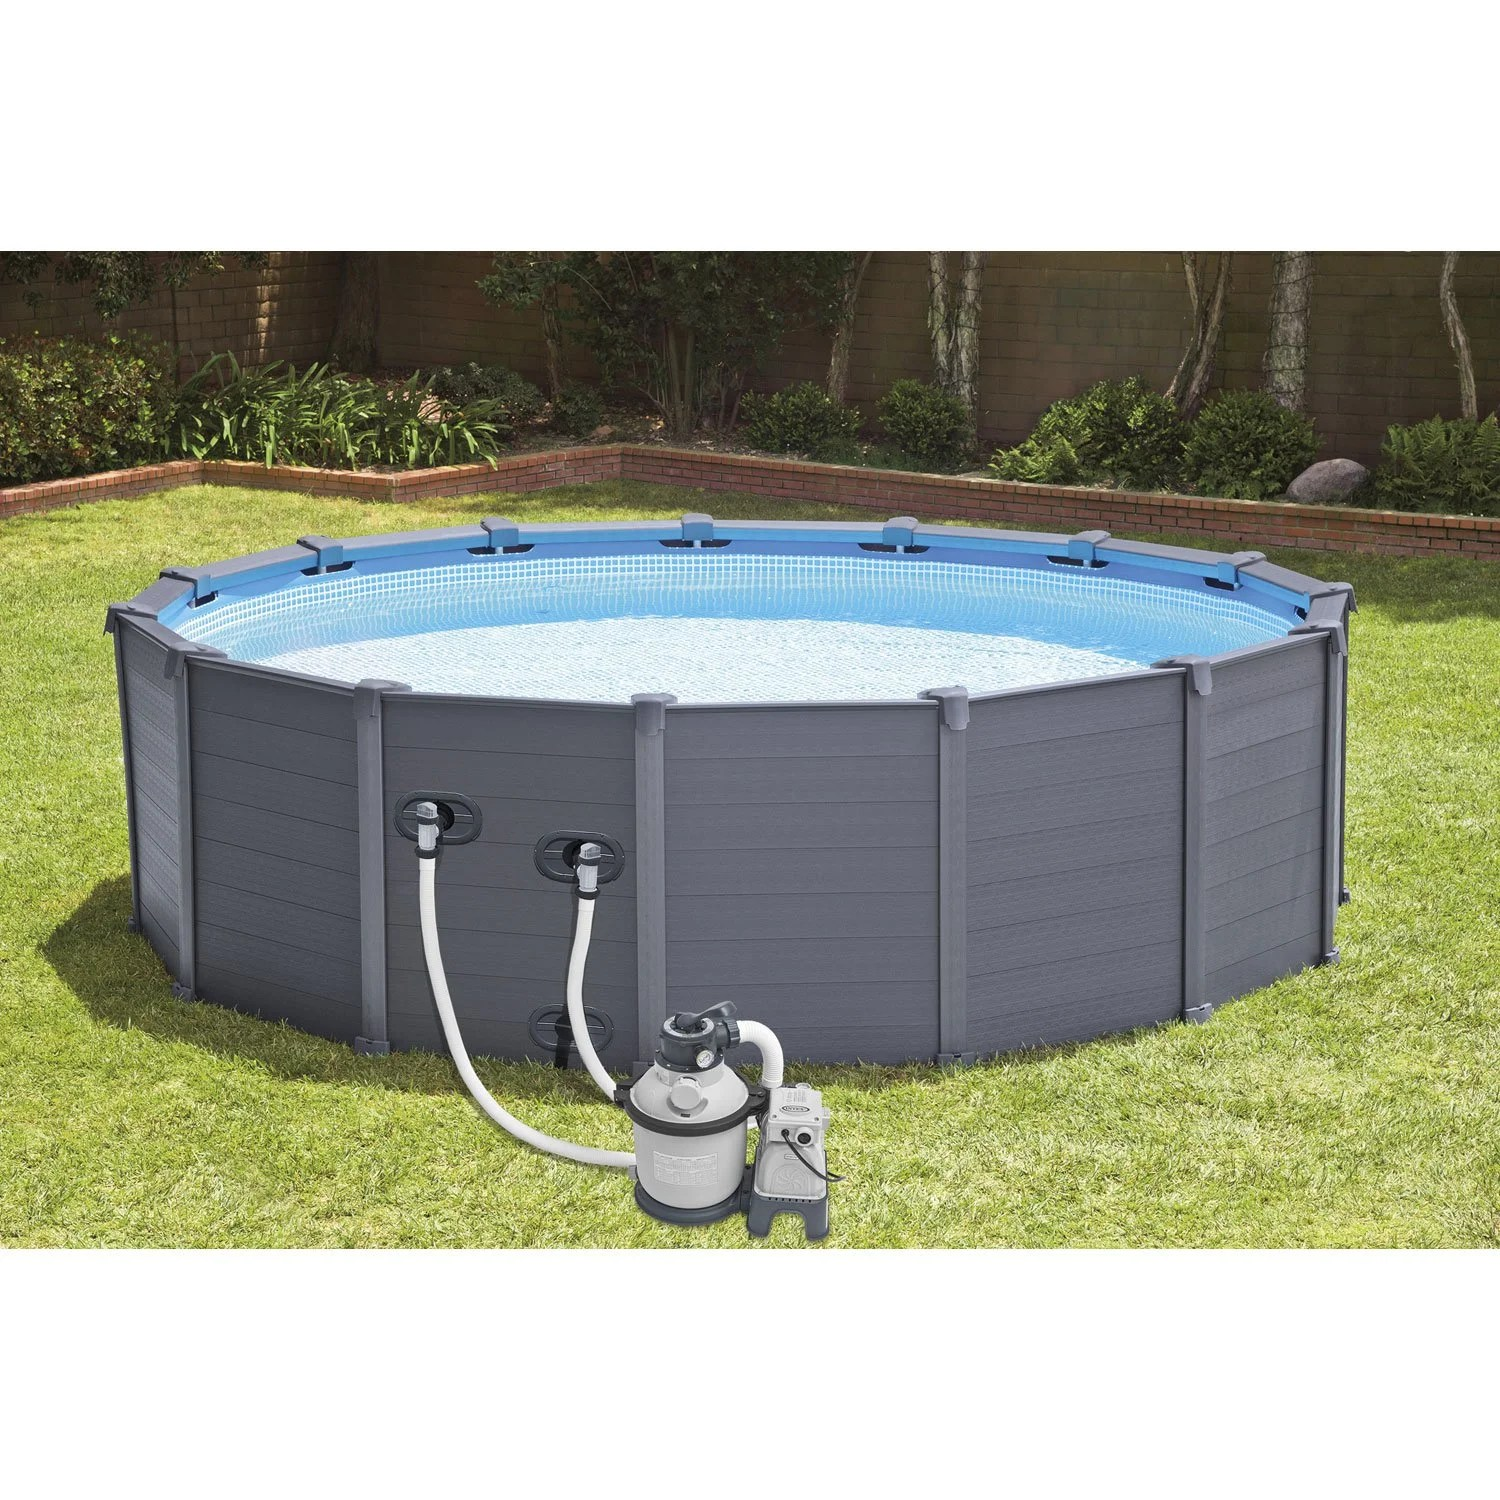 Le Roy Merlin Piscine Piscine Hors Sol Autoportante Tubulaire Graphite Intex